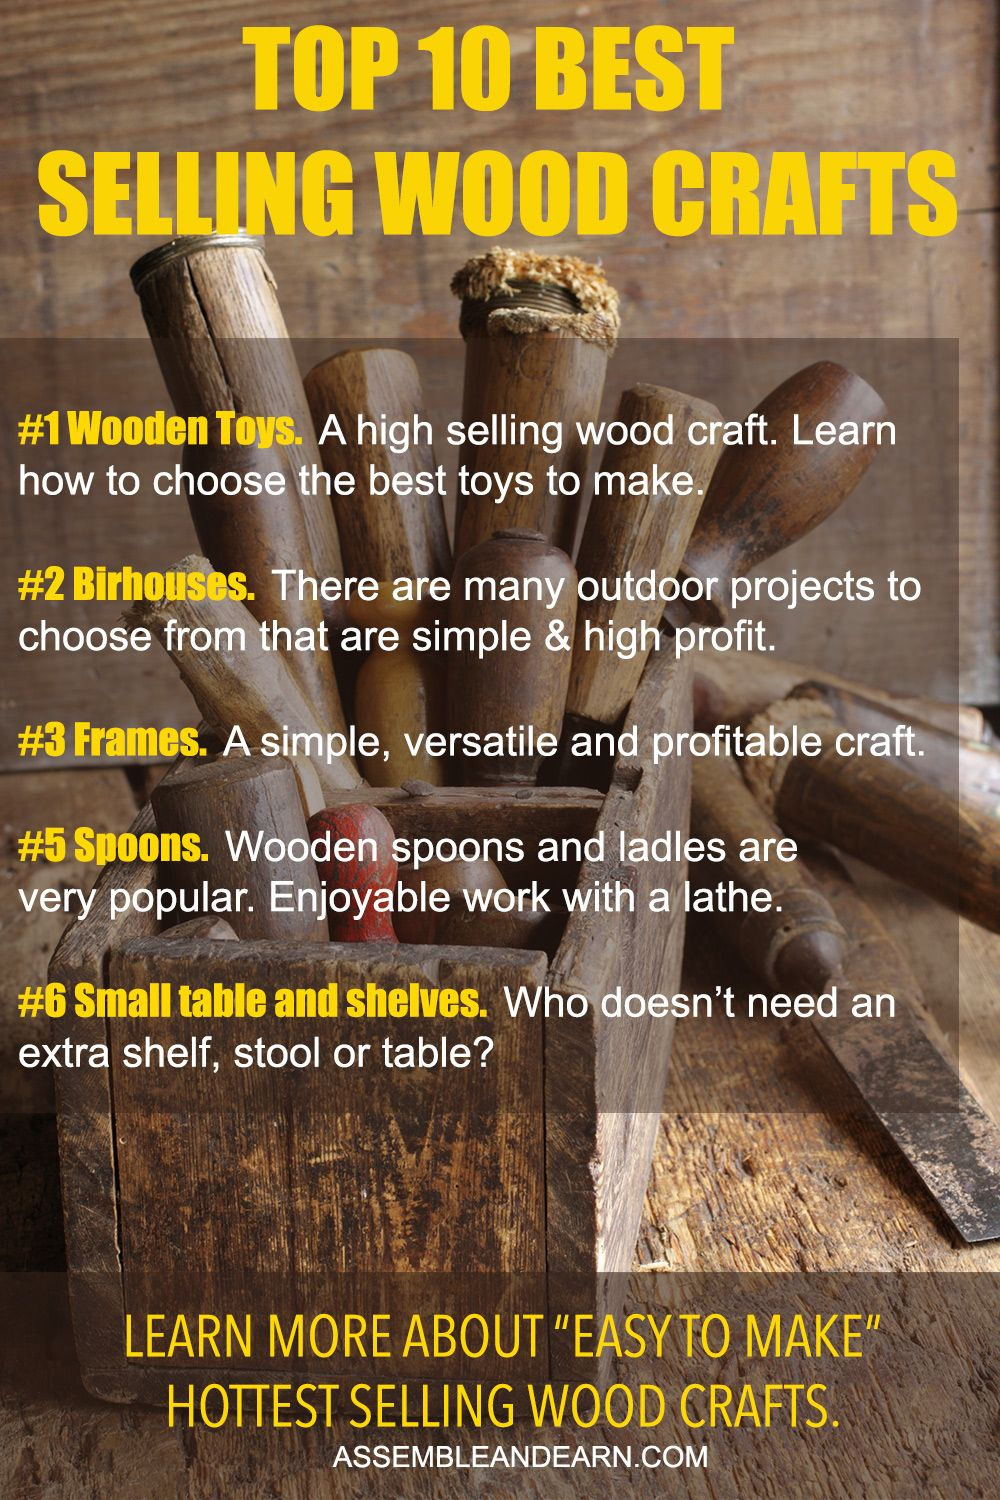 Discover Easy To Make And Highest Selling Small Wood Crafts Of All Times A Great Addition Your Woodworking Business